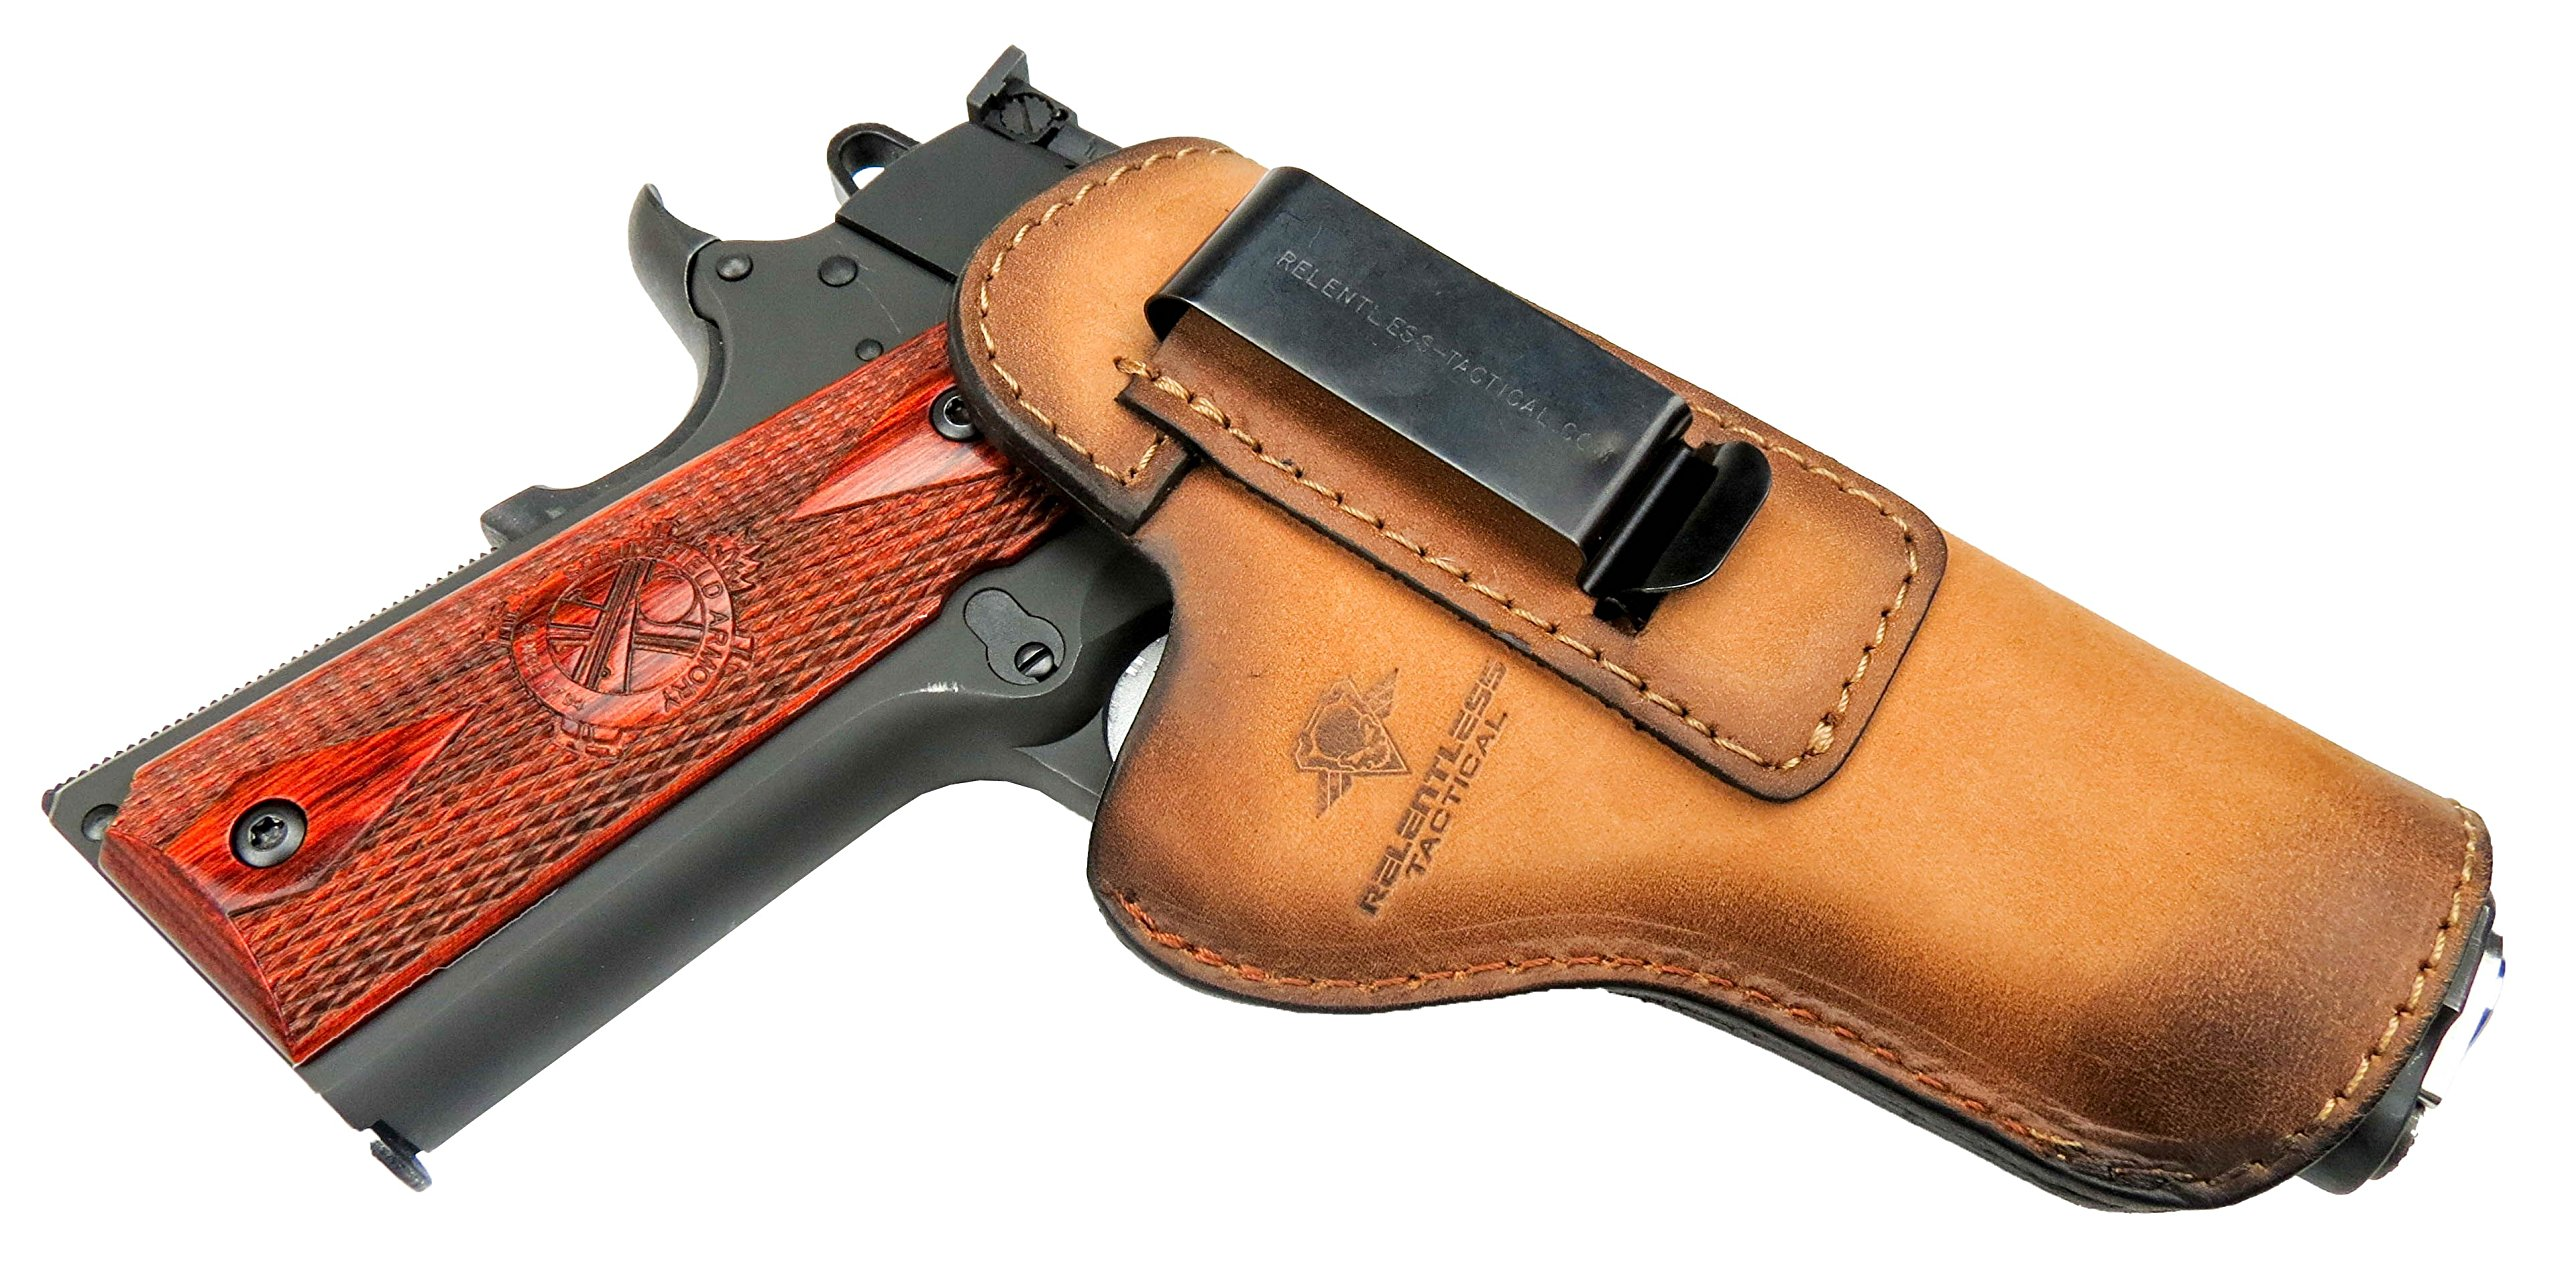 Relentless Tactical The Defender Leather IWB Holster - Fits Most 1911 Style Handguns - Kimber - Colt - S & W - Sig Sauer - Remington - Ruger & More - Made in USA - Charred Oak Right Handed